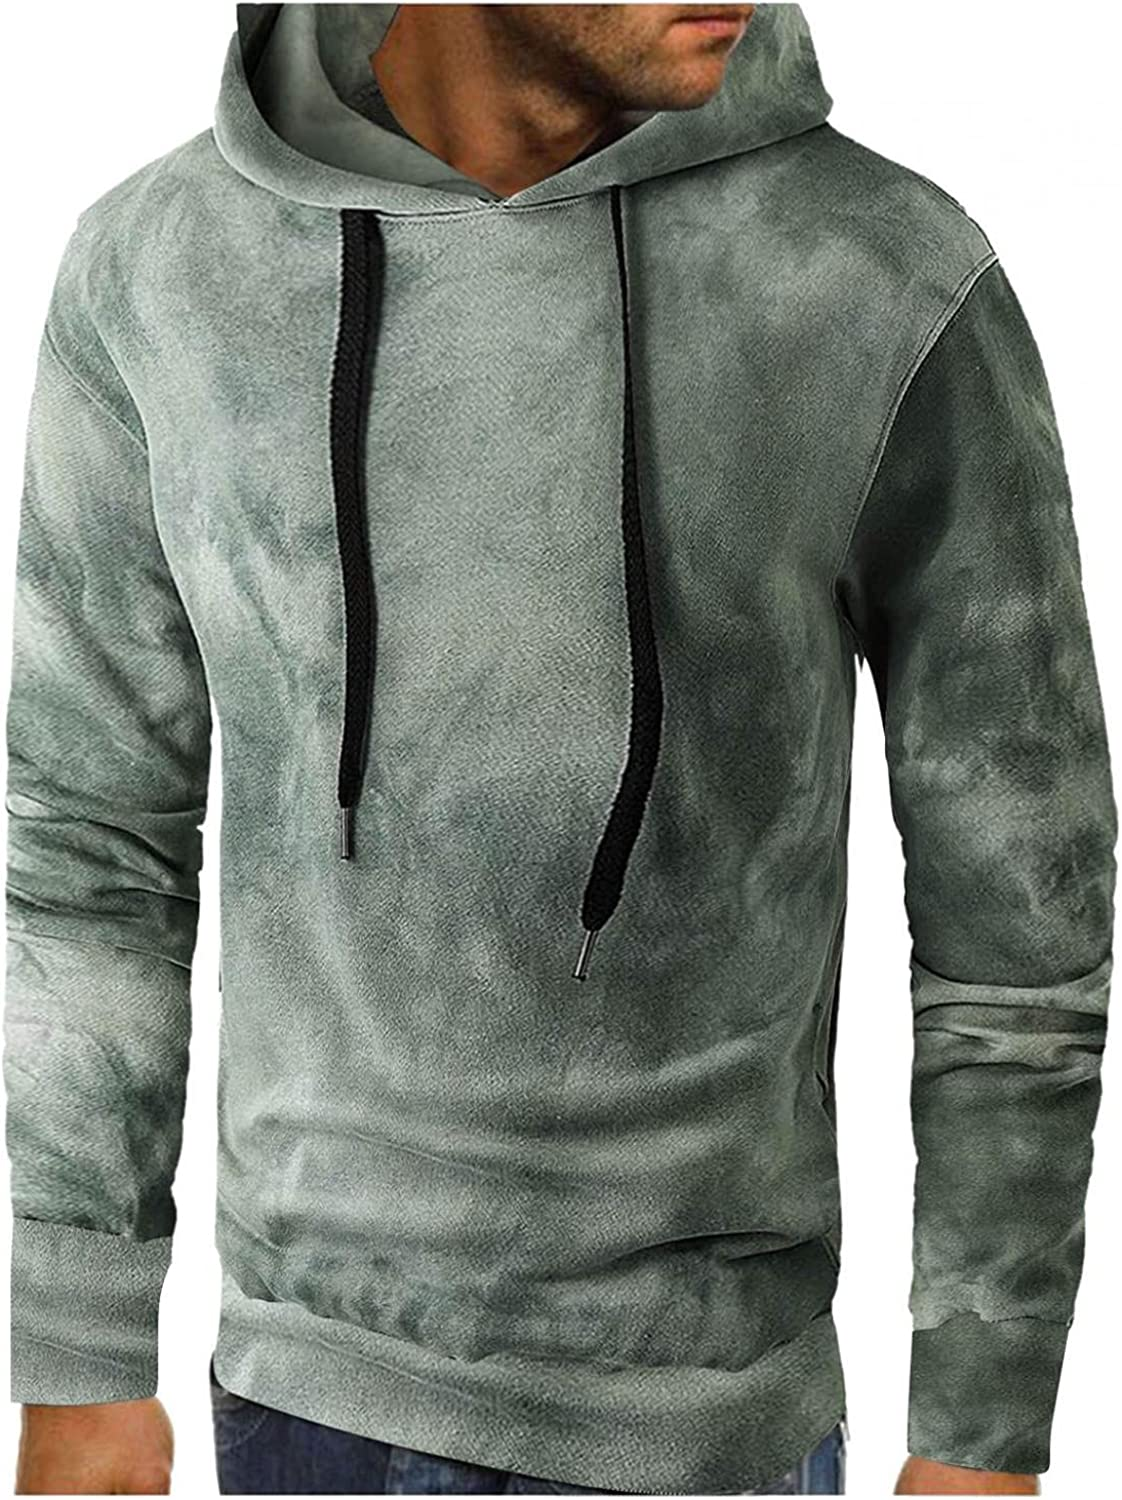 Hoodies for Men Mens Fashion Athletic Hoodie Shirts Casual Sport Pullover Solid Color Sweatshirts for Men Tops